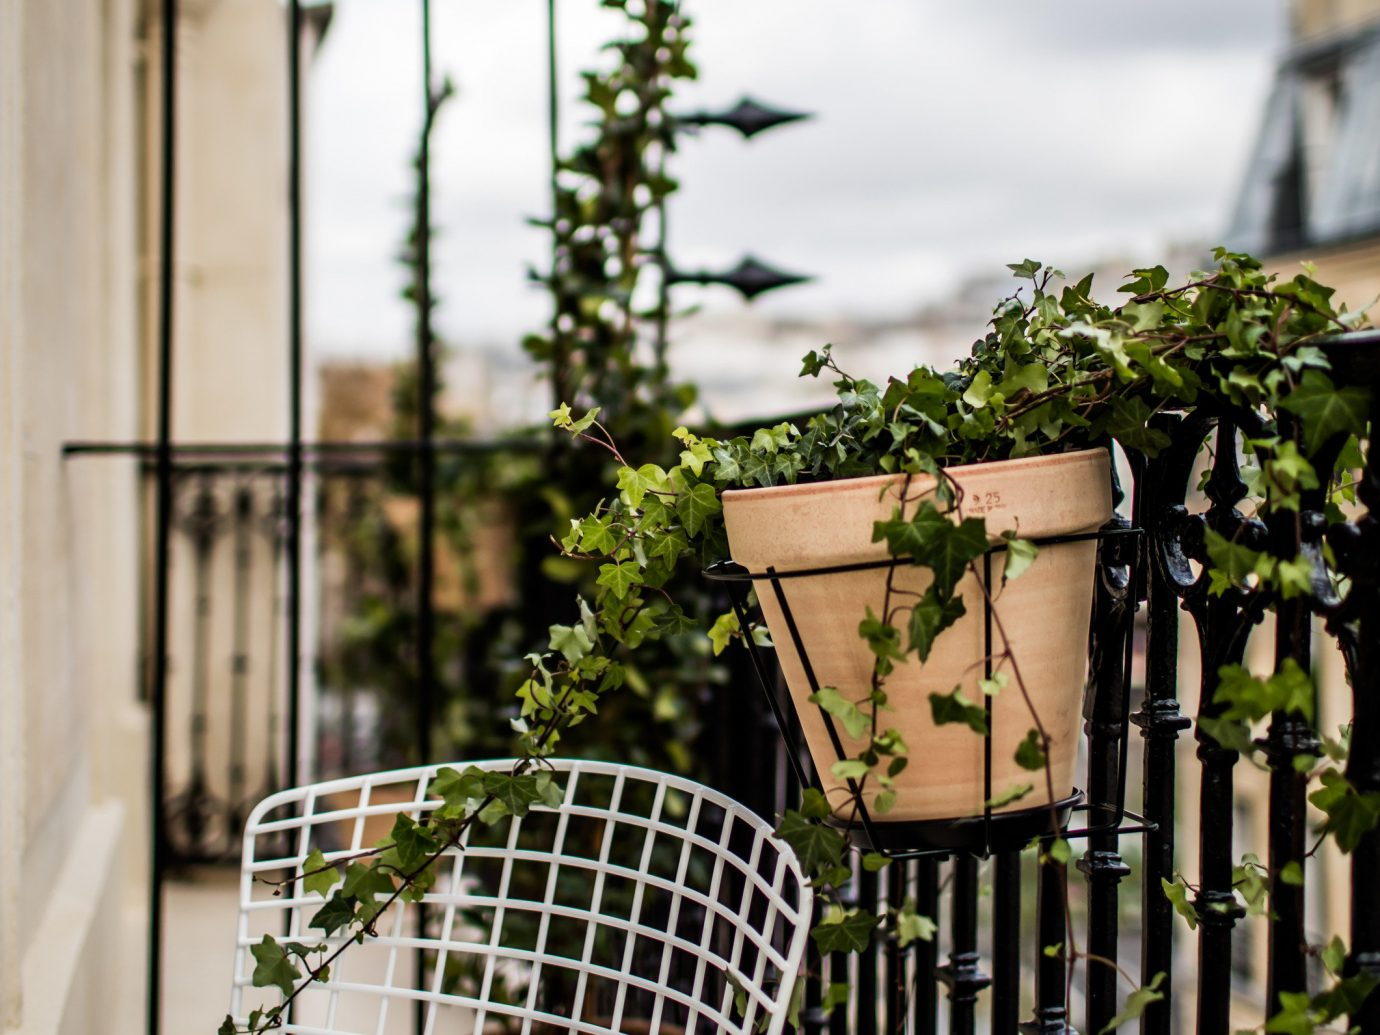 Boutique Hotels Hotels outdoor man made object Balcony backyard lighting outdoor structure spring flower Garden